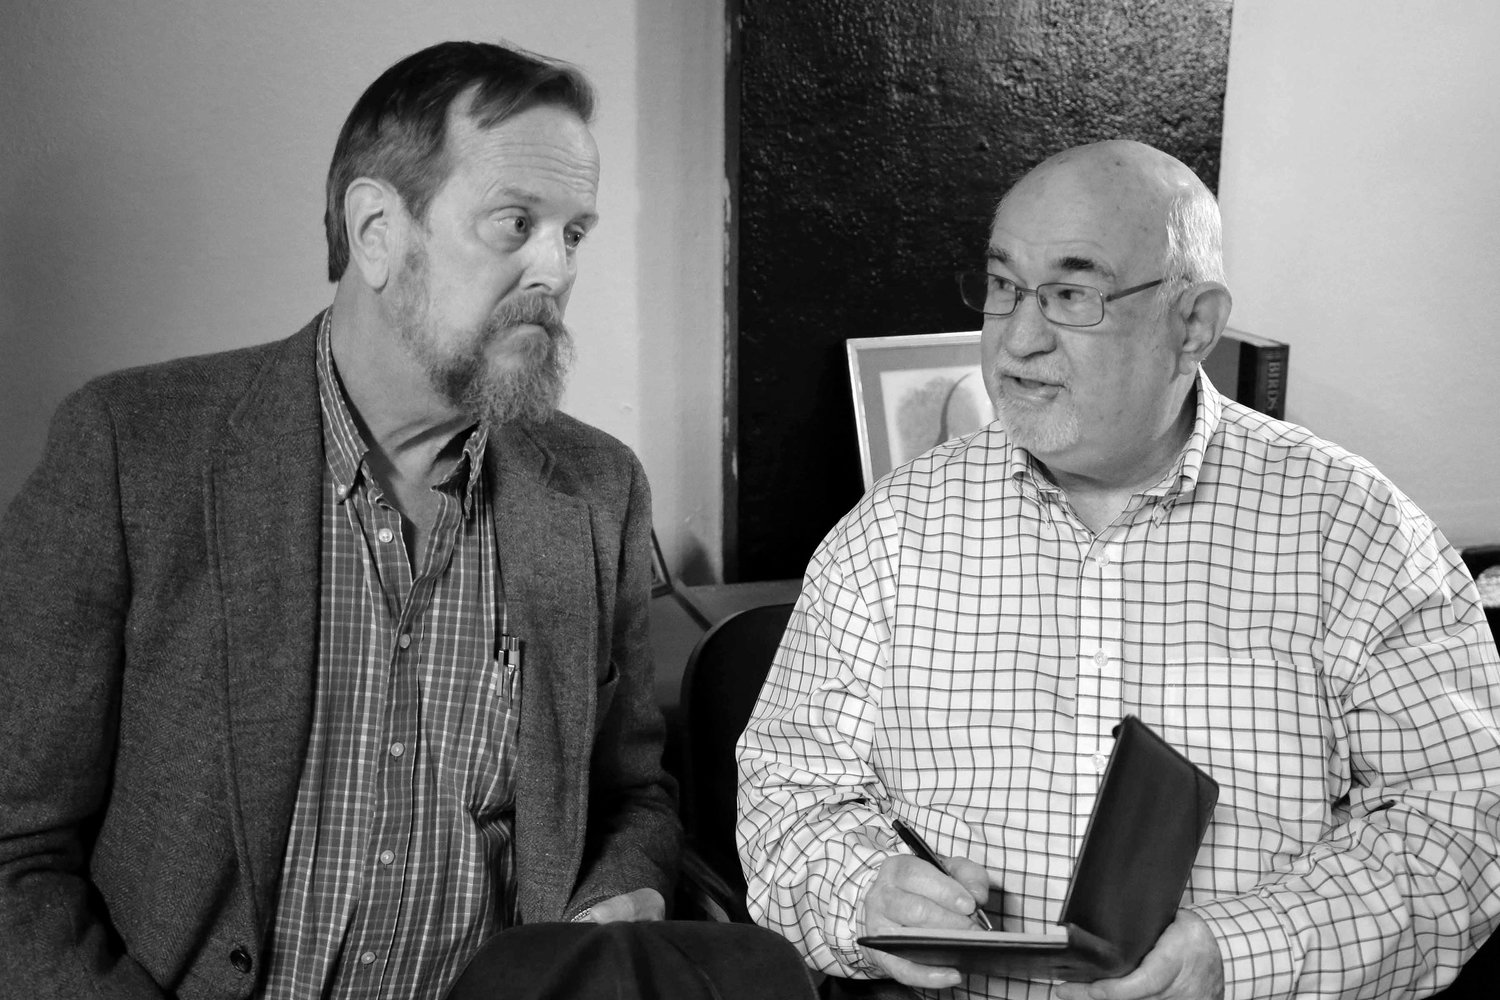 Elwood P. Dowd (Bob Diven) is being analyzed by Dr. Chumley